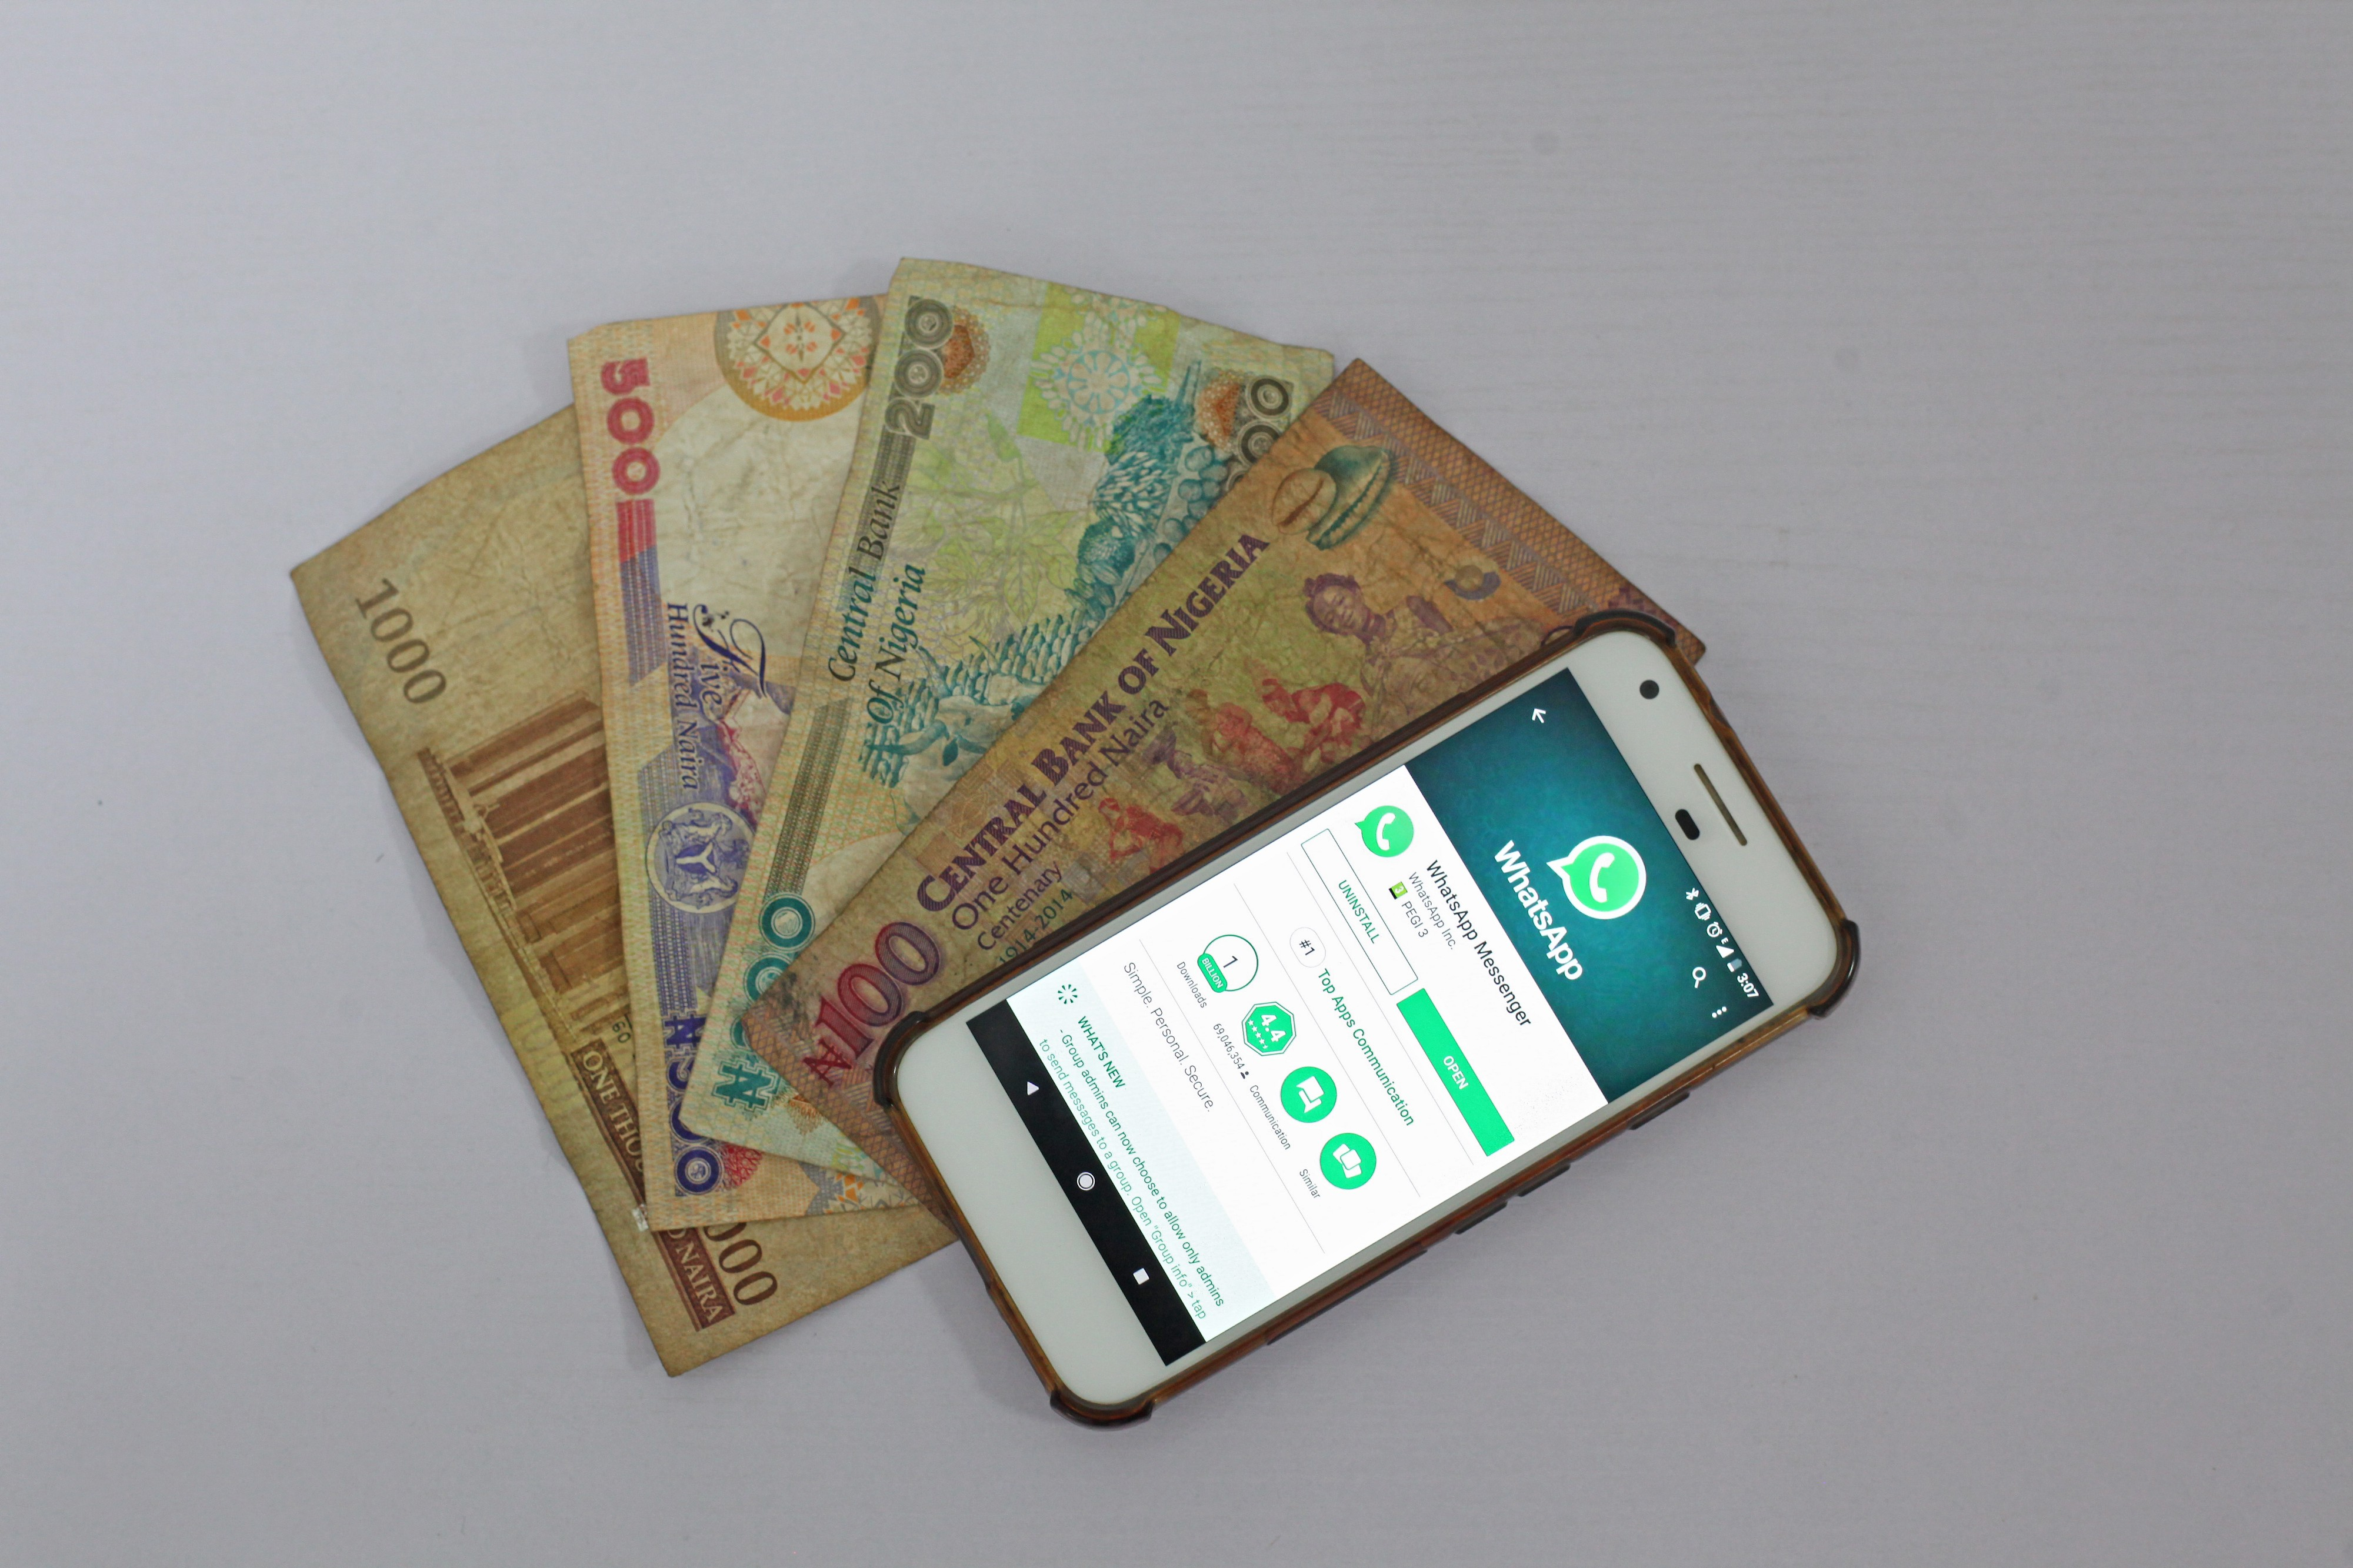 mobile phone apps drive digital banking and e-commerce in Africa